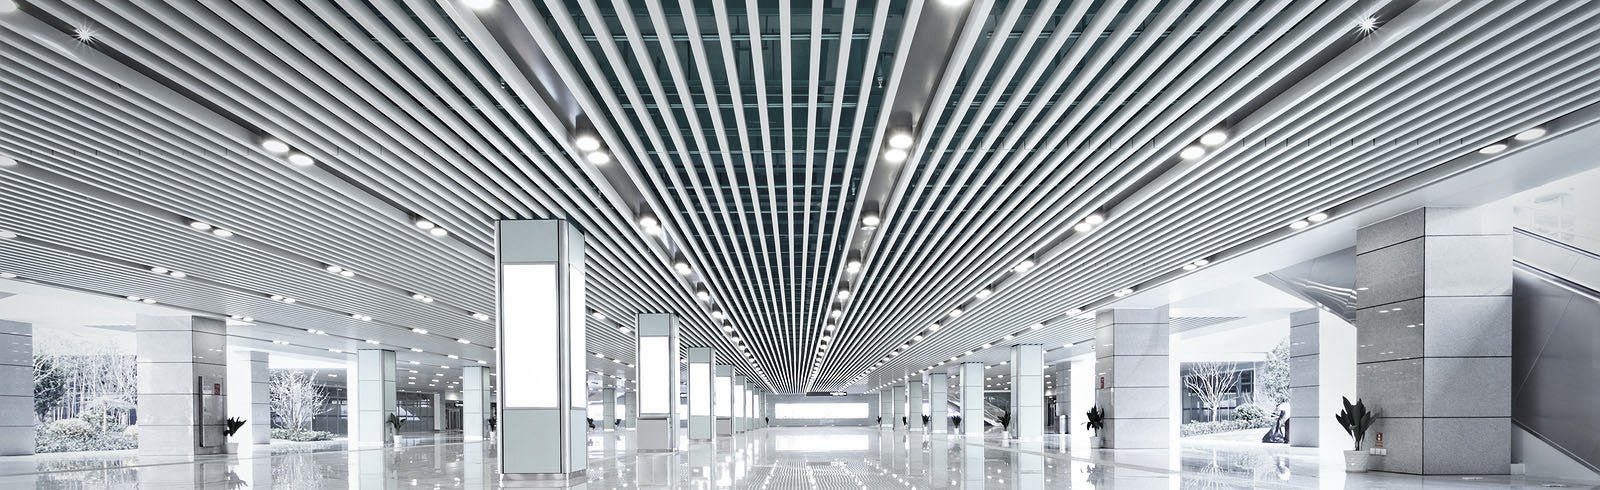 Commercial lighting neslight nes light will help you trim your business operating costs with lighting designs that keep energy bills as low as possible we will make sure your specialty aloadofball Choice Image